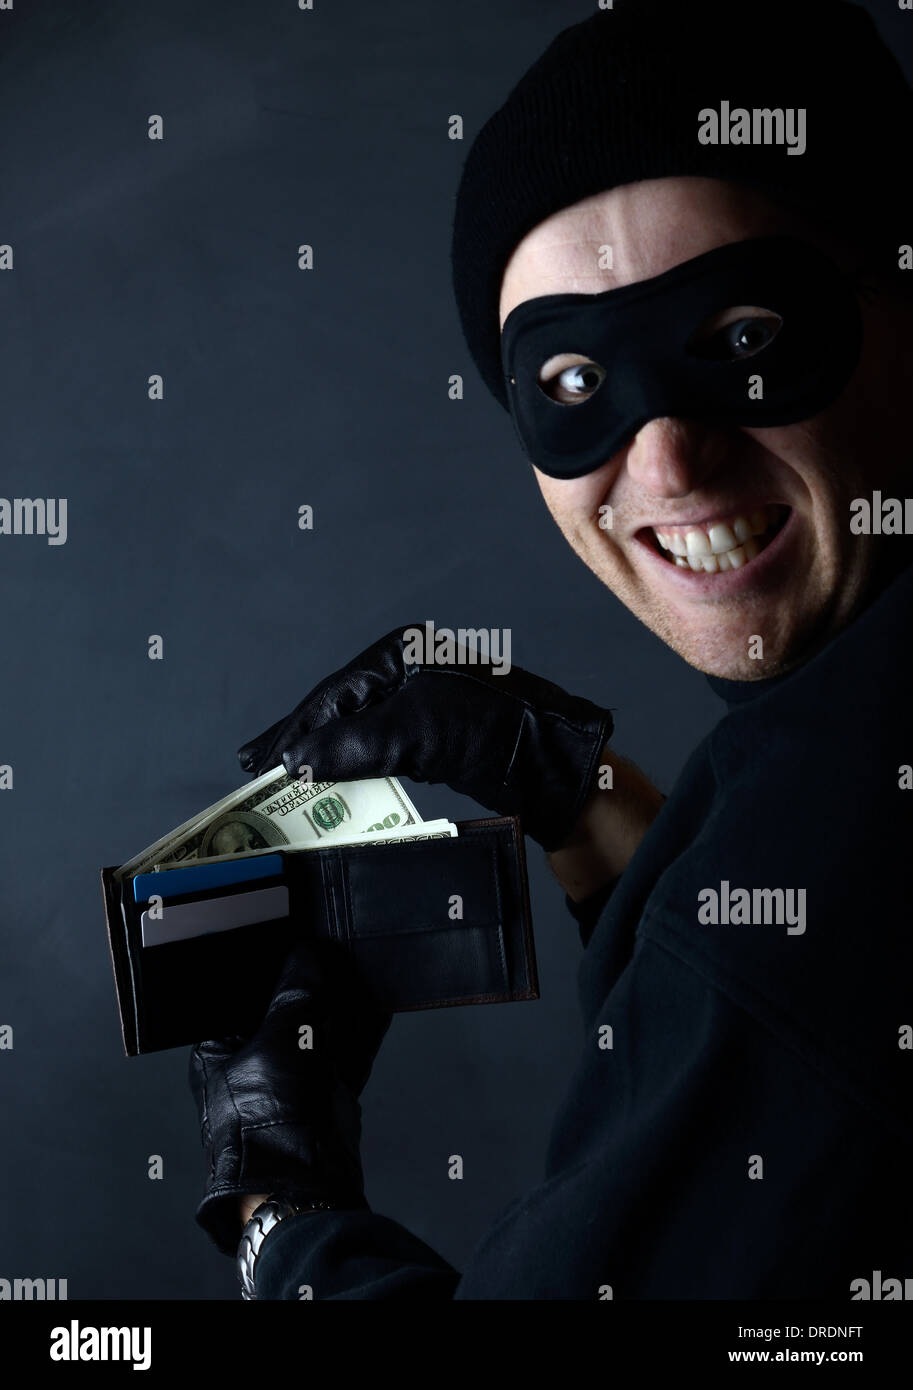 A thief sealing from a wallet in a dark setting - Stock Image